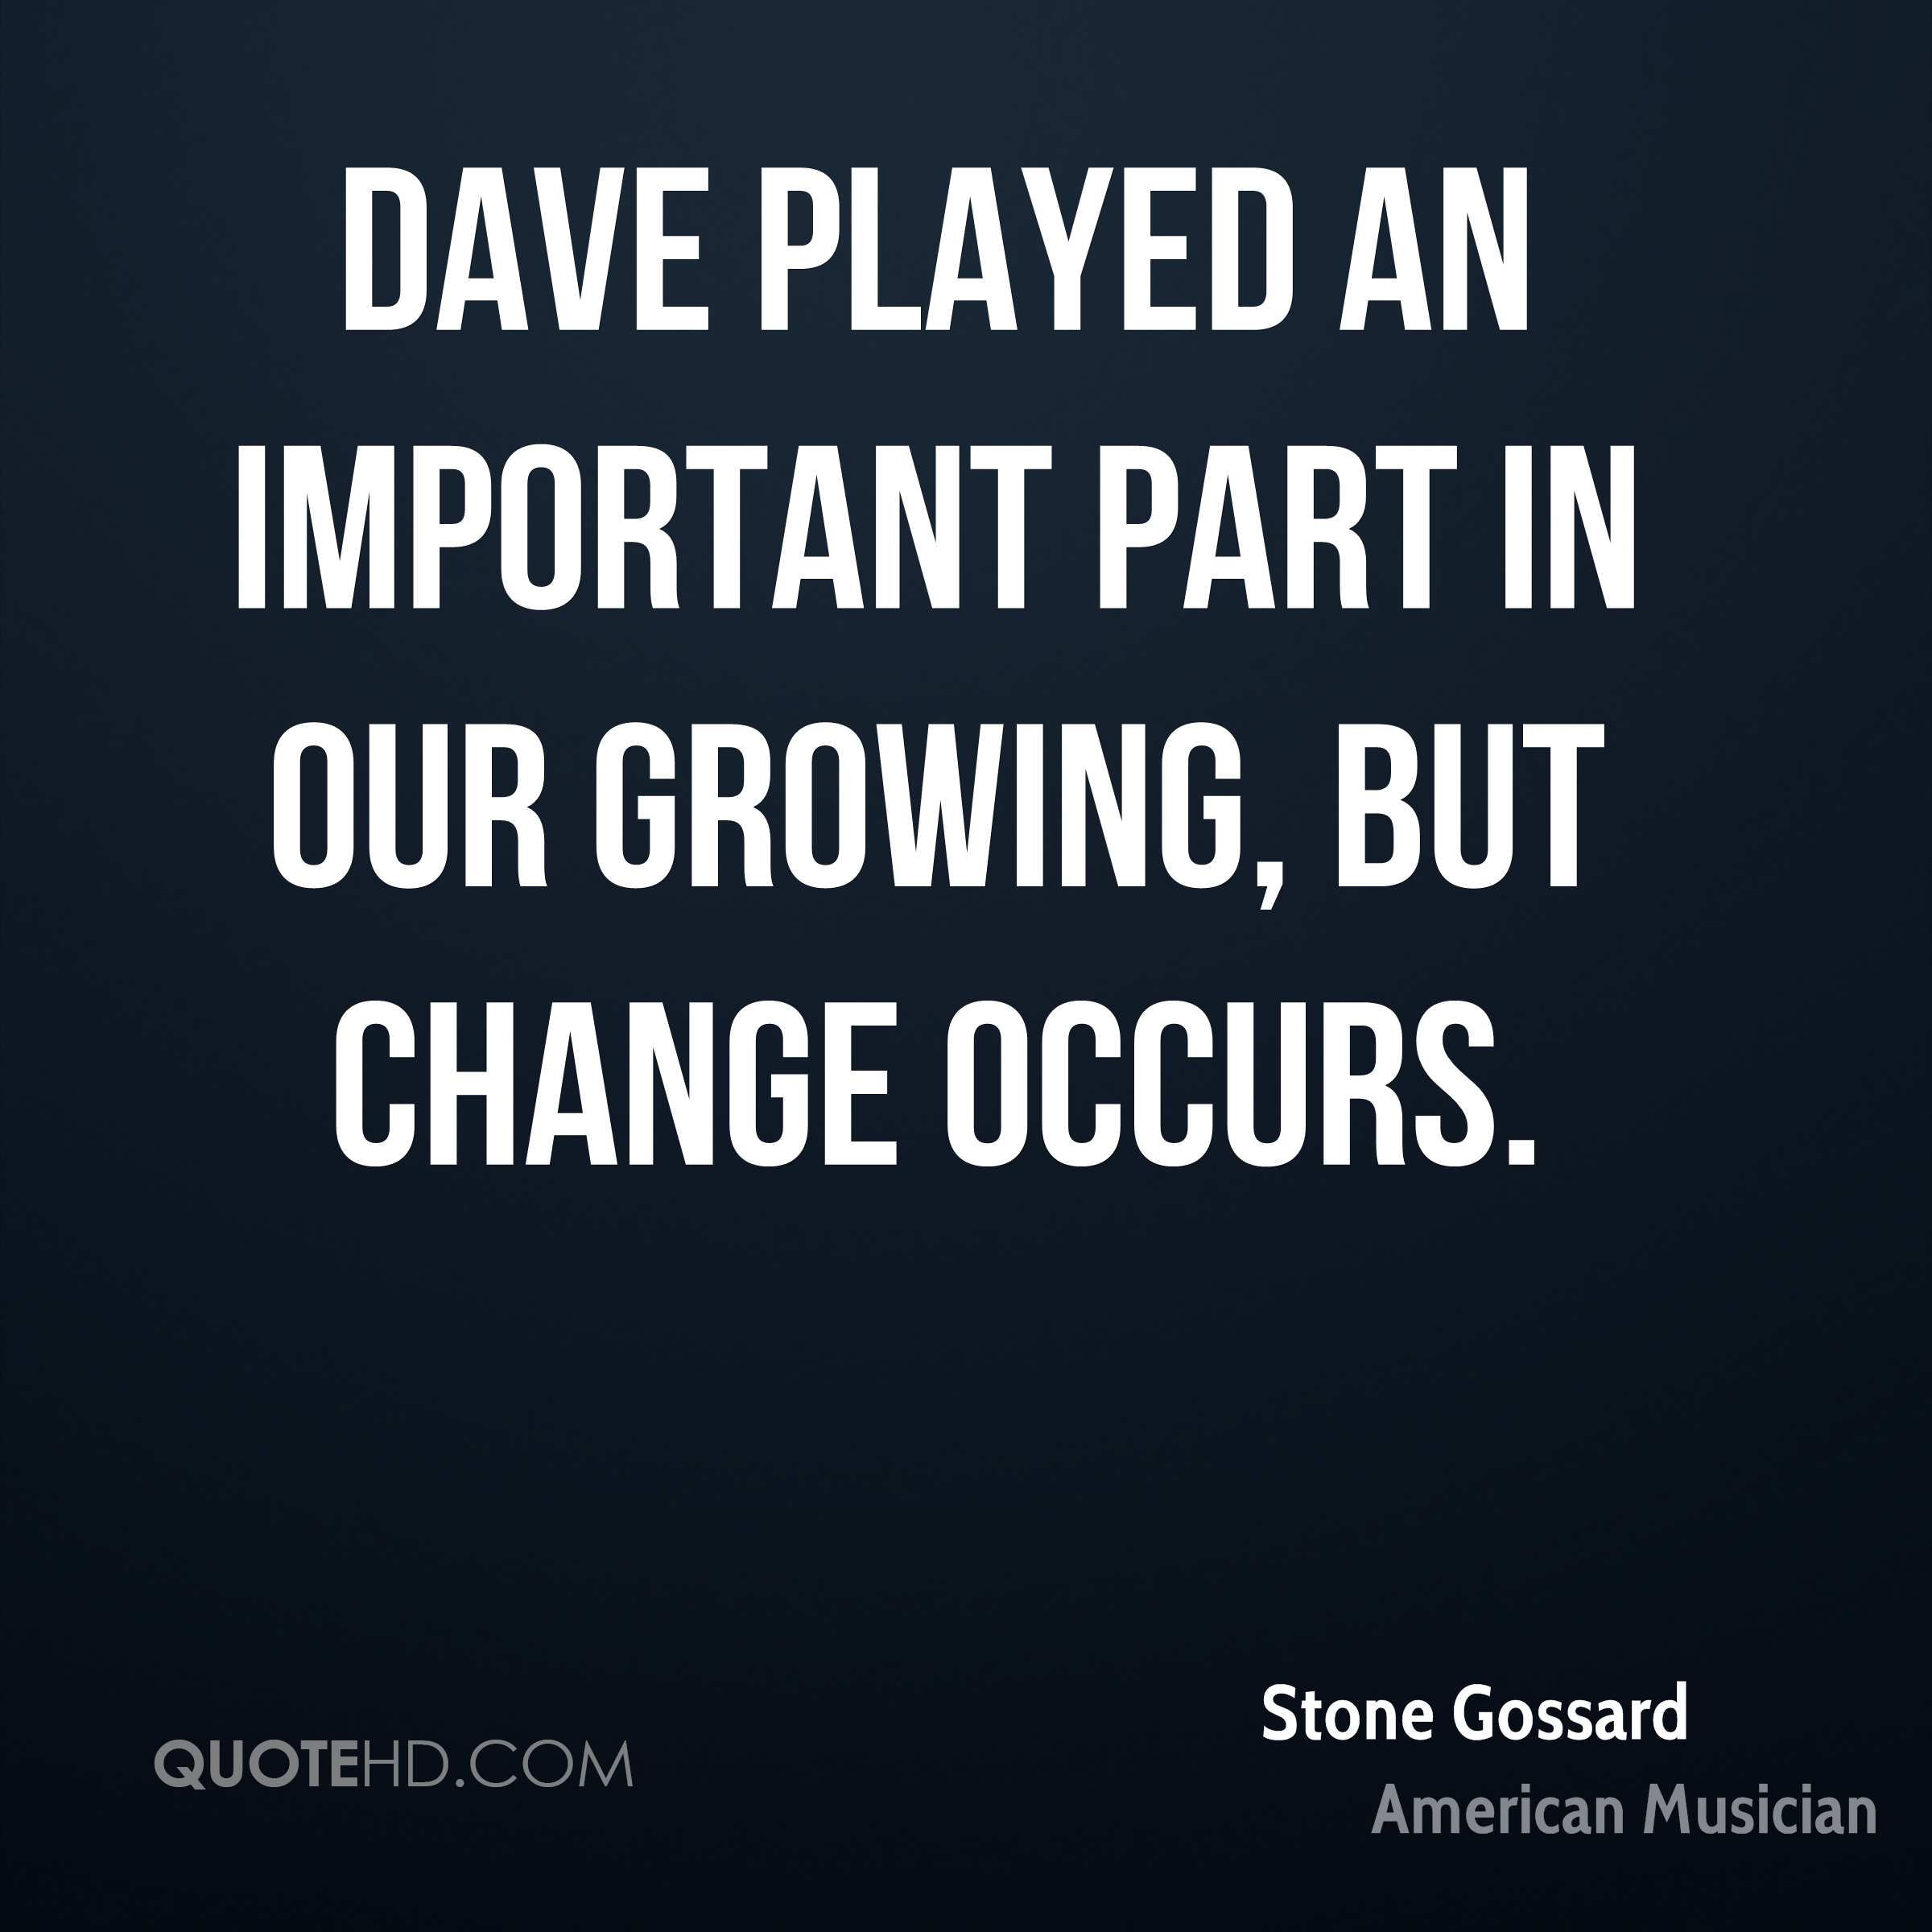 Dave played an important part in our growing, but change occurs.